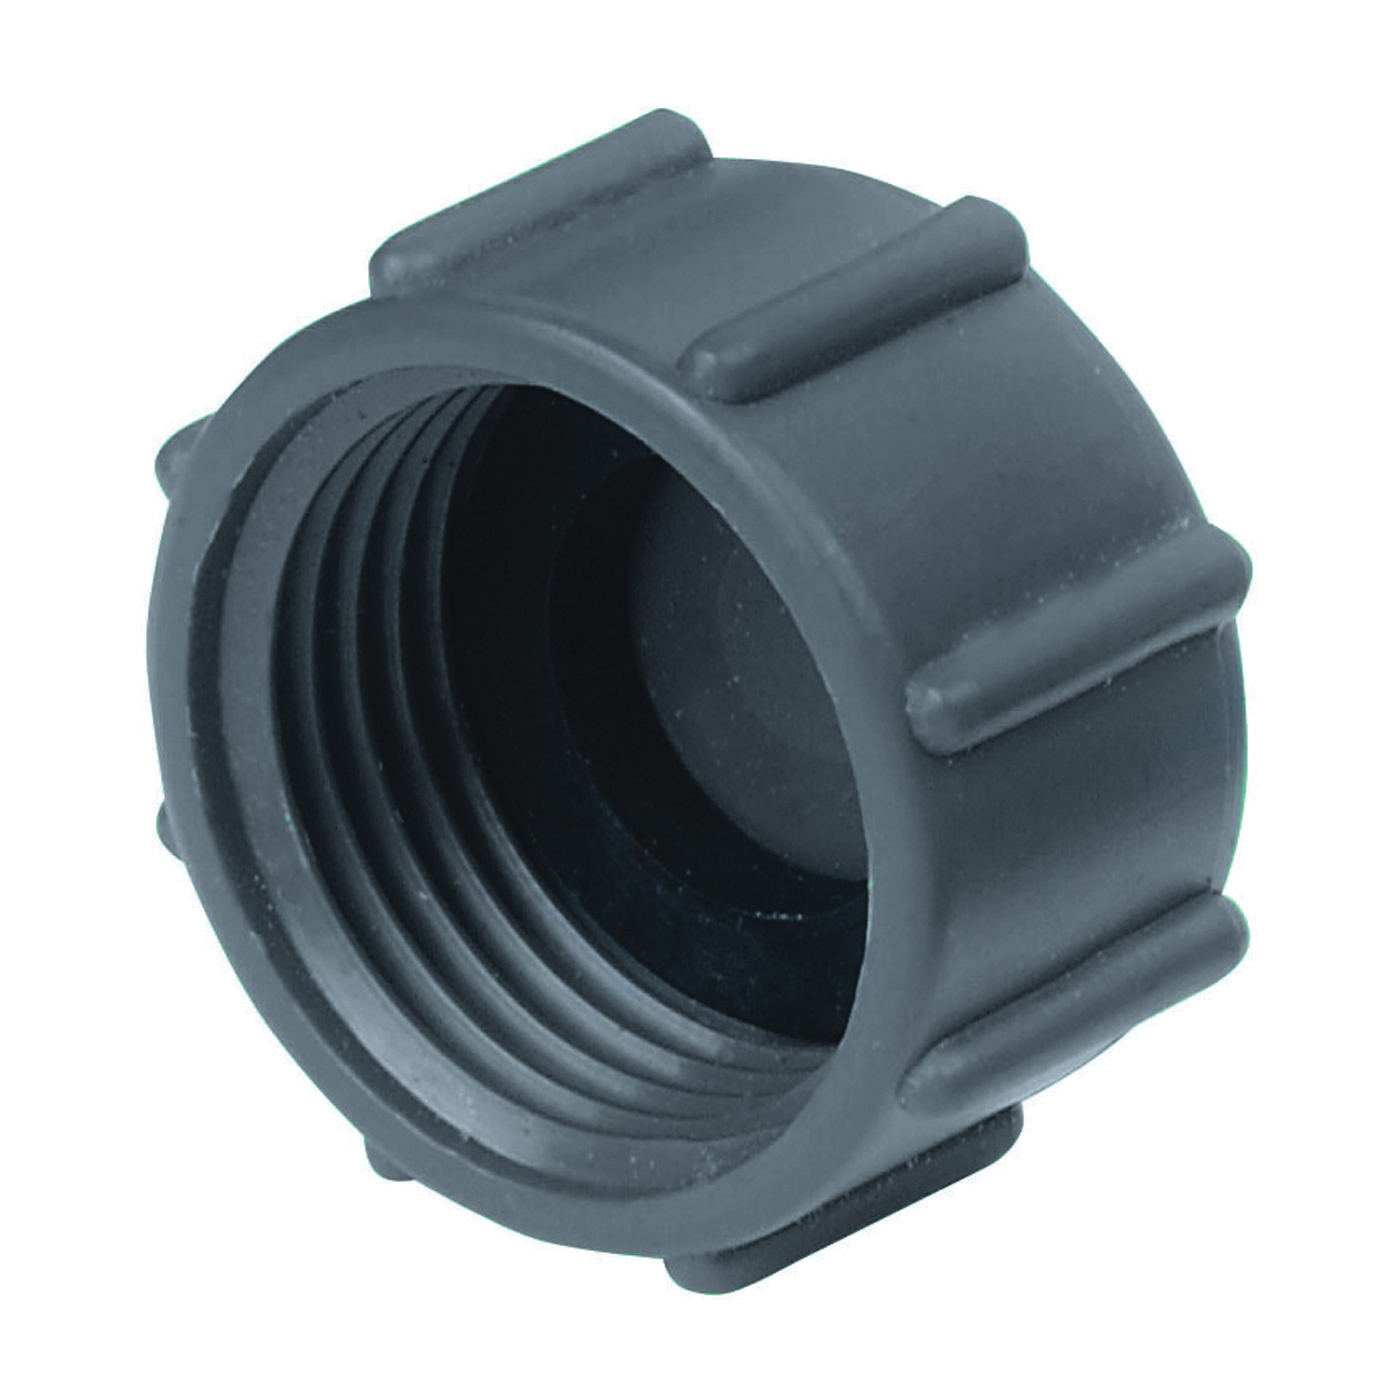 Picture of Gilmour 04HCC Light-Duty Hose Cap Threaded, Threaded, Polymer